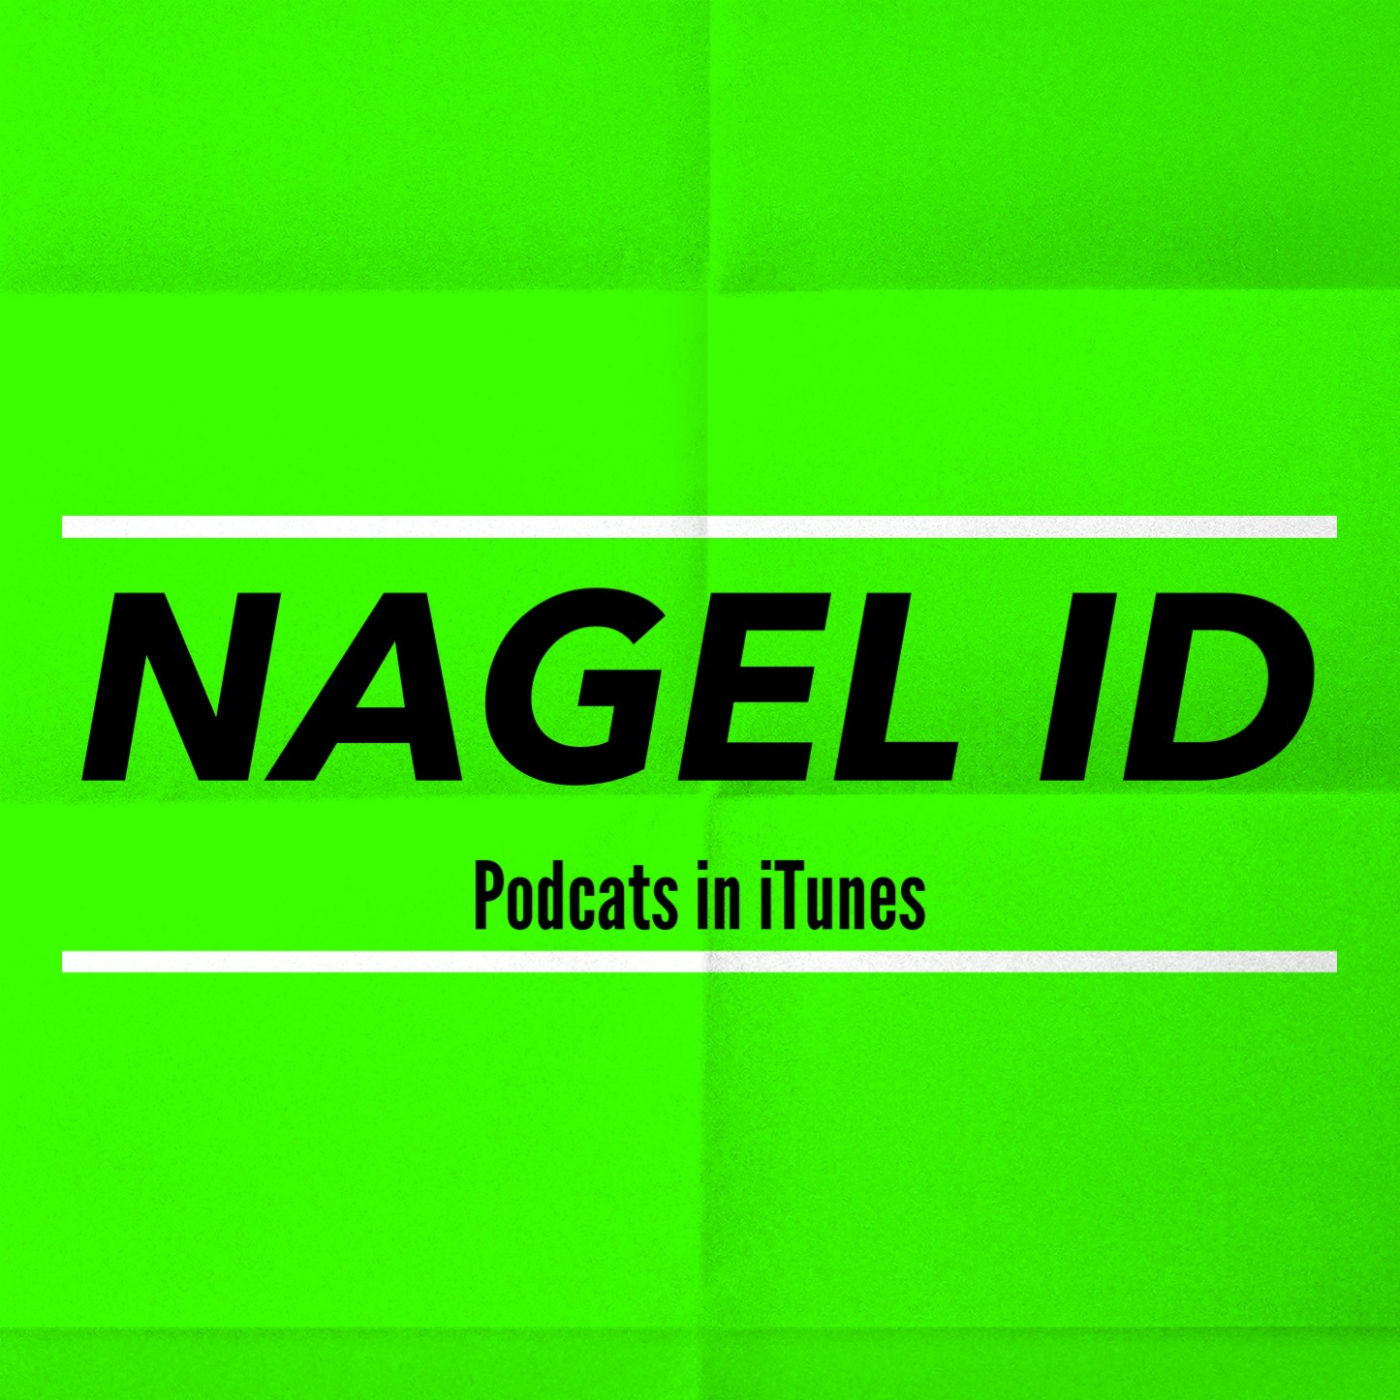 NAGEL ID-House Music Podcast